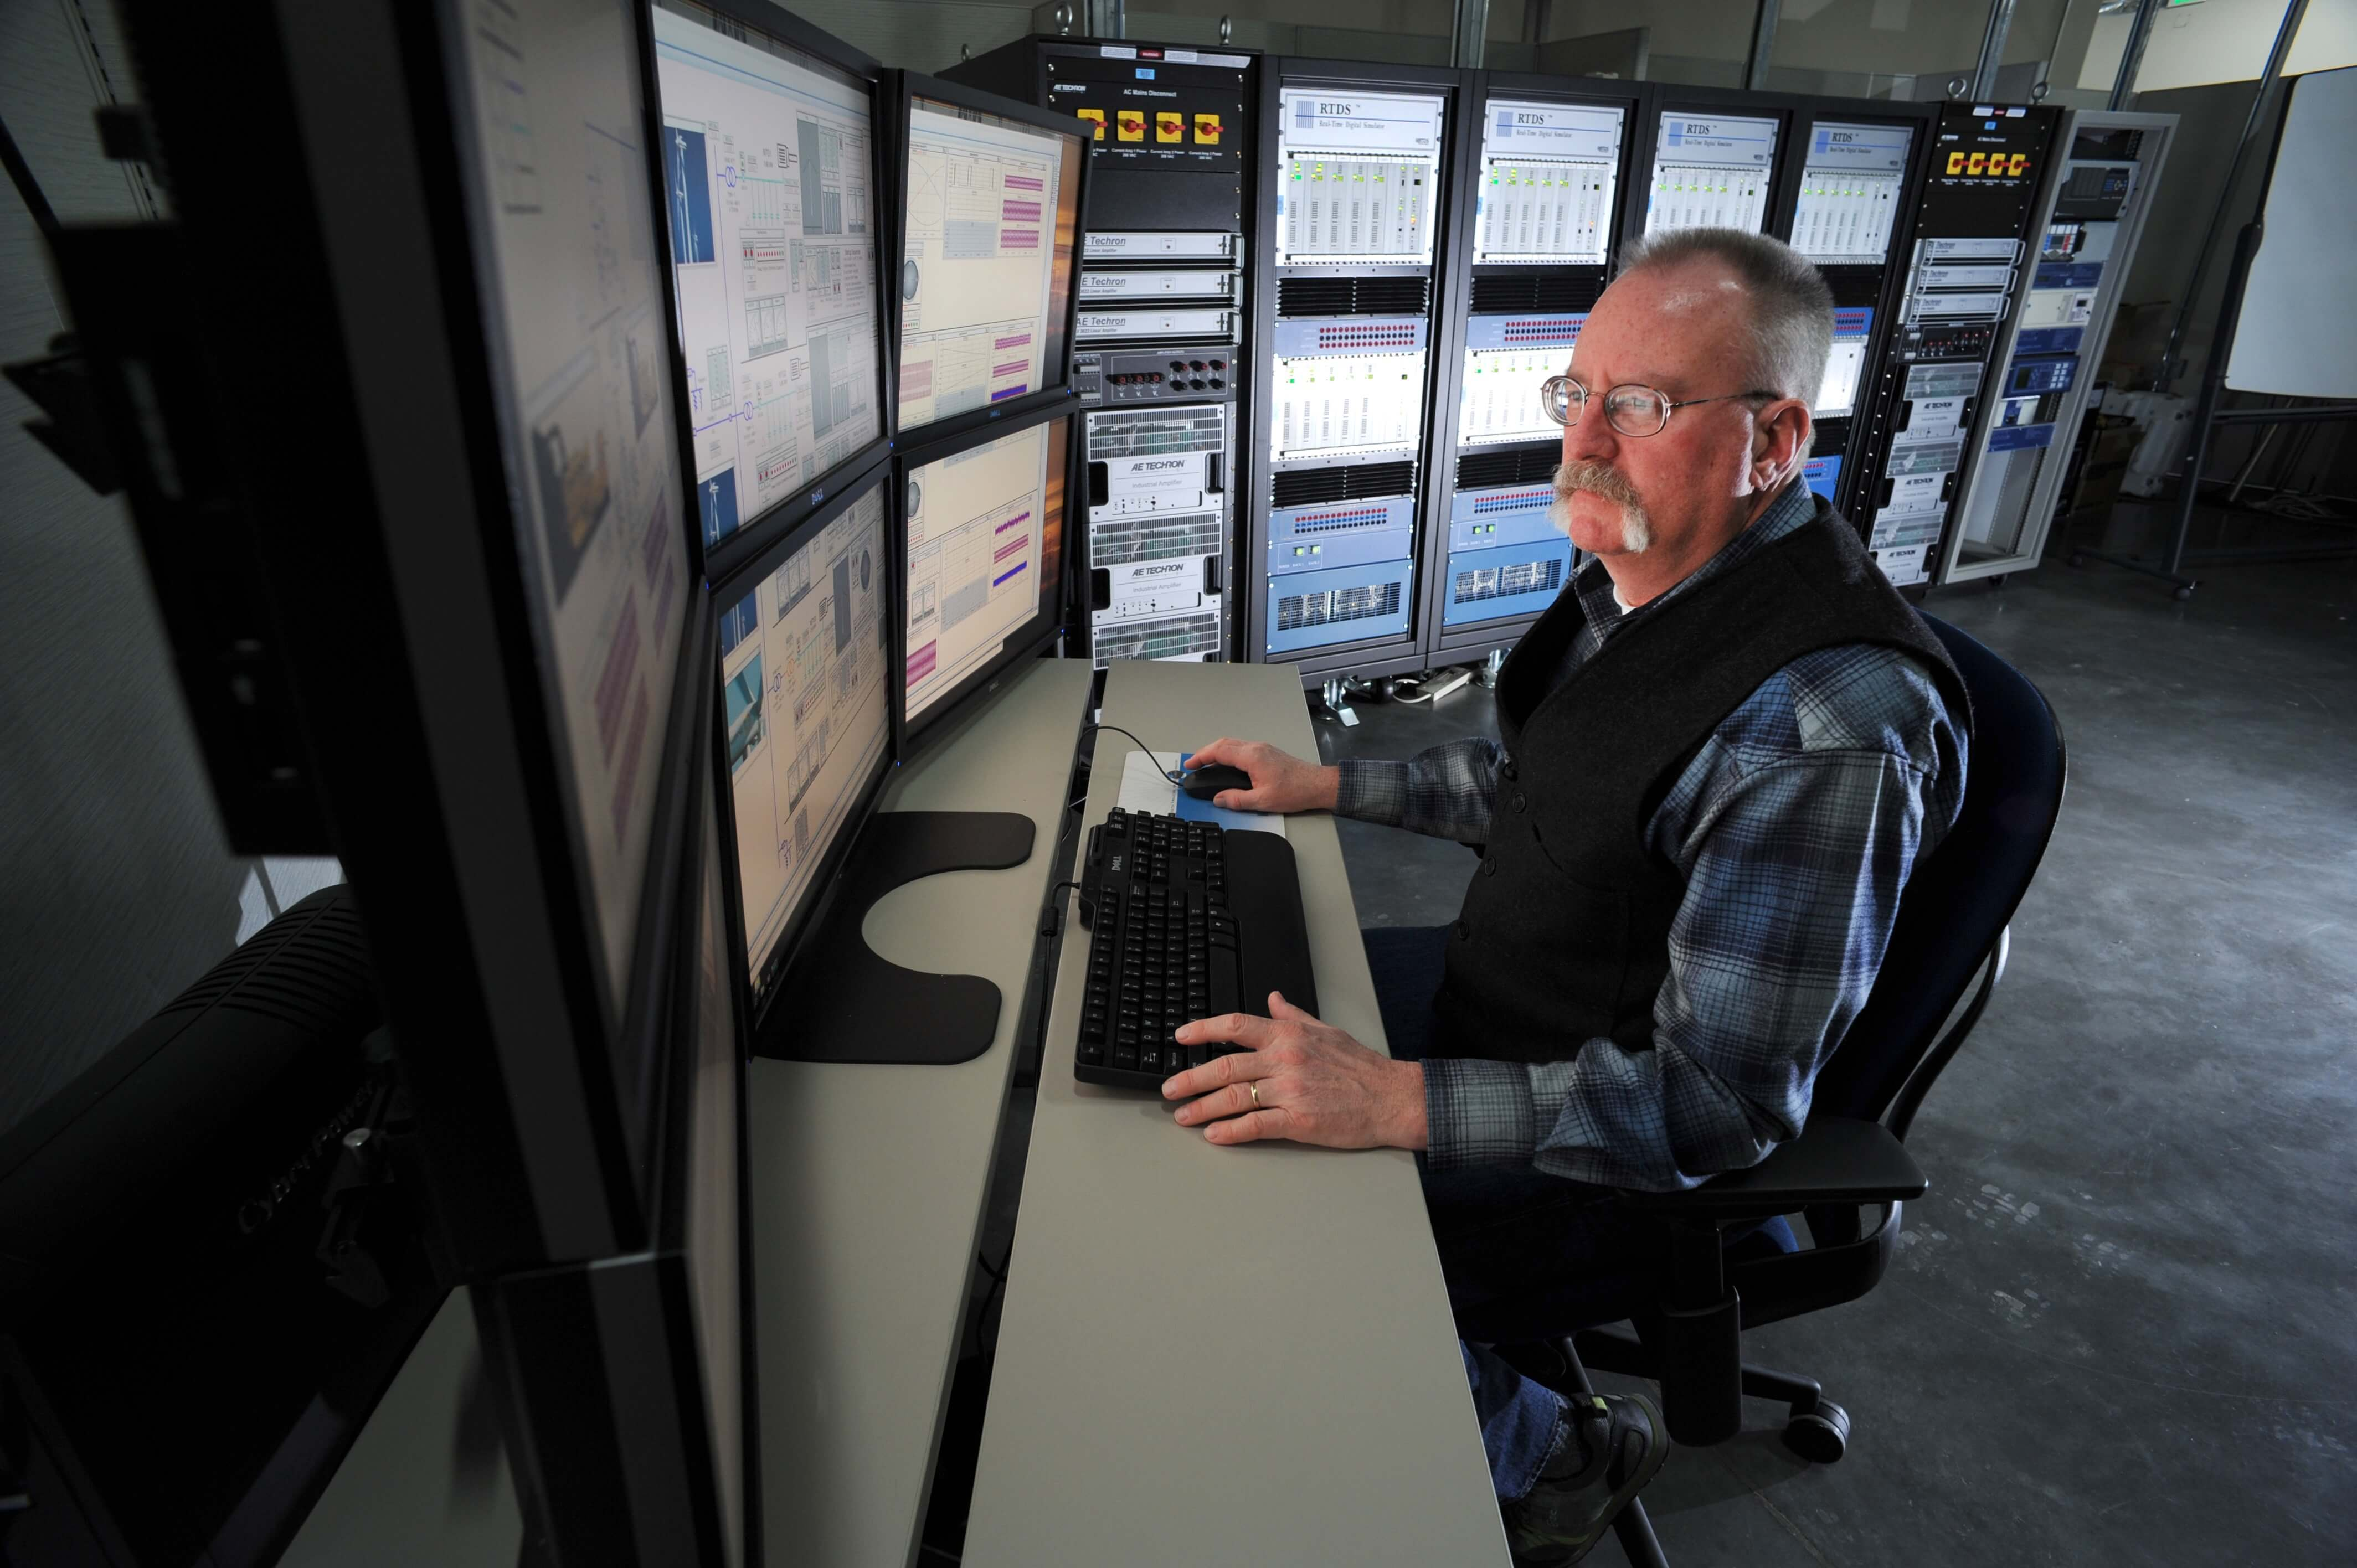 a man sitting in front of multiple screens